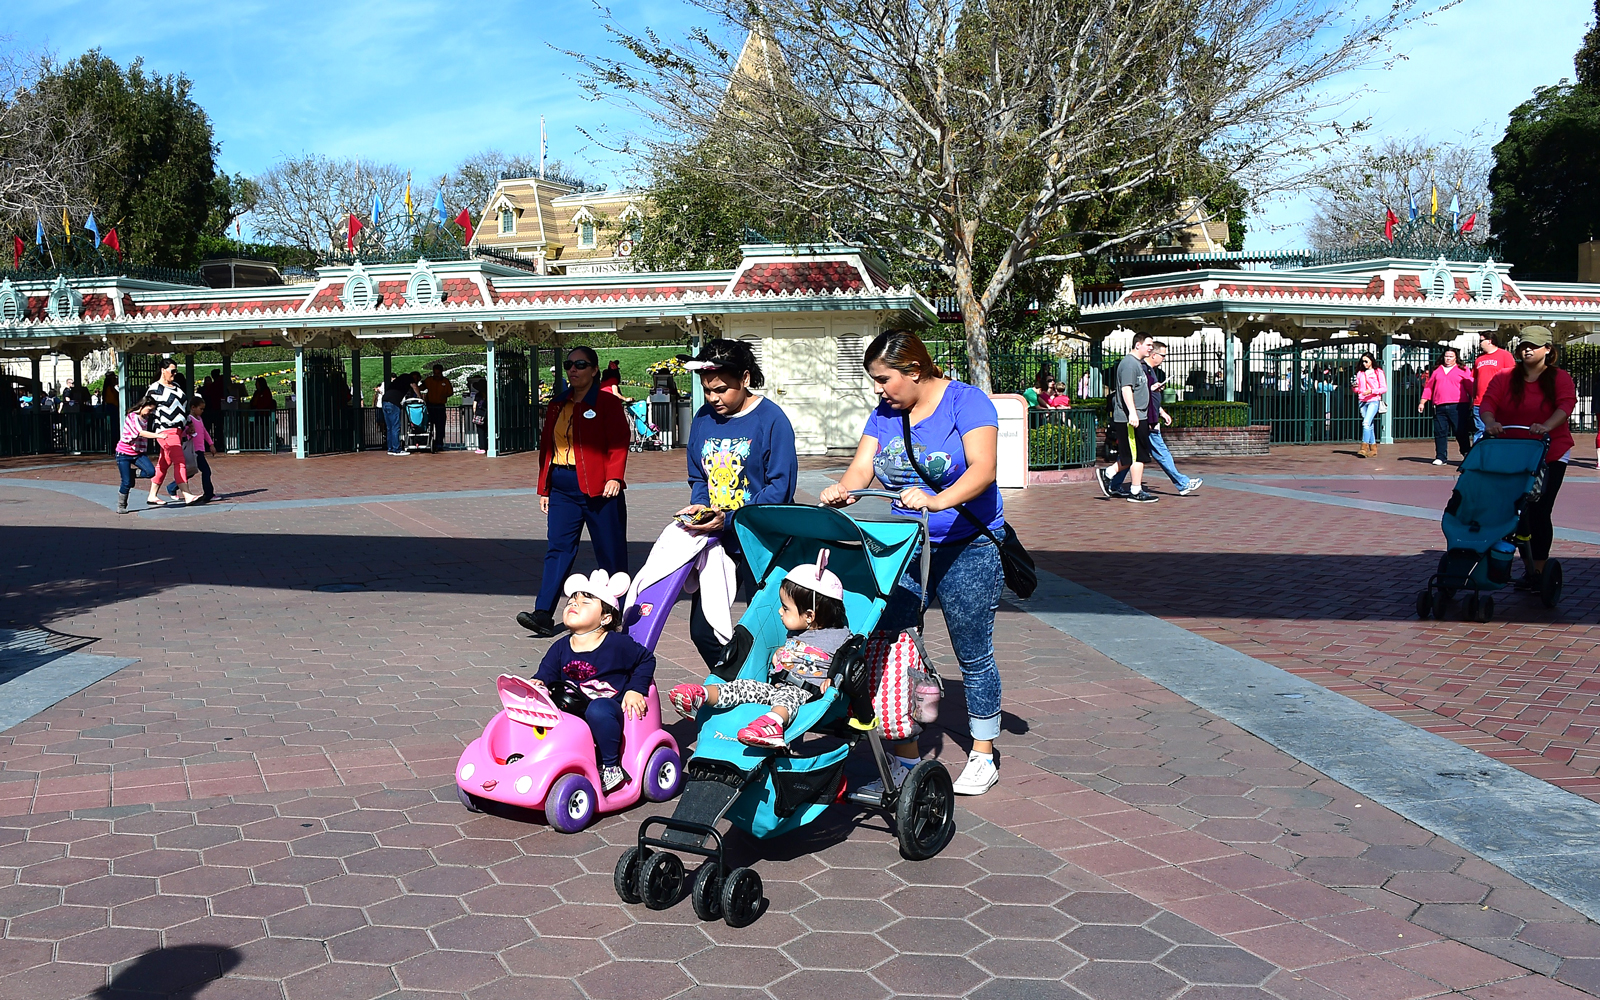 People visit Disneyland in Anaheim, California